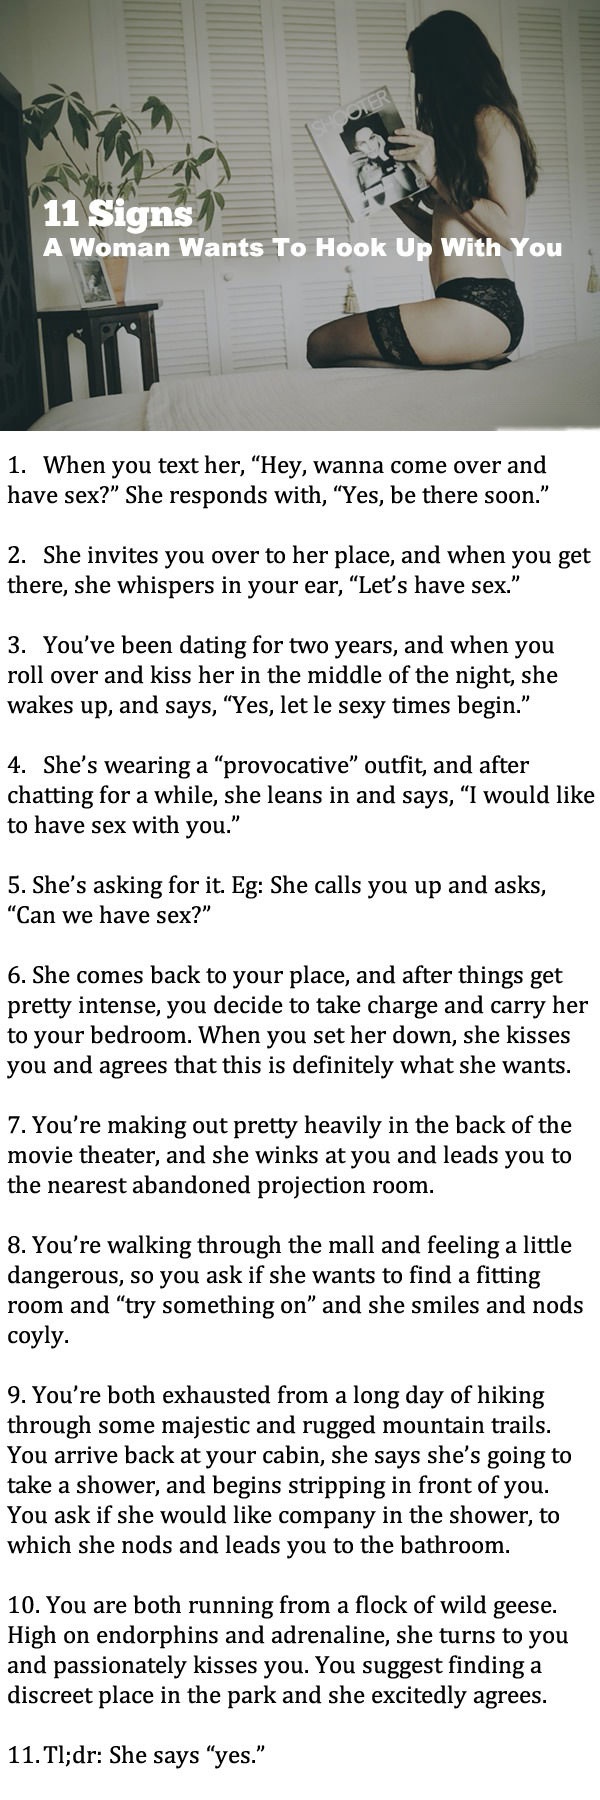 Signs that a woman wants sex